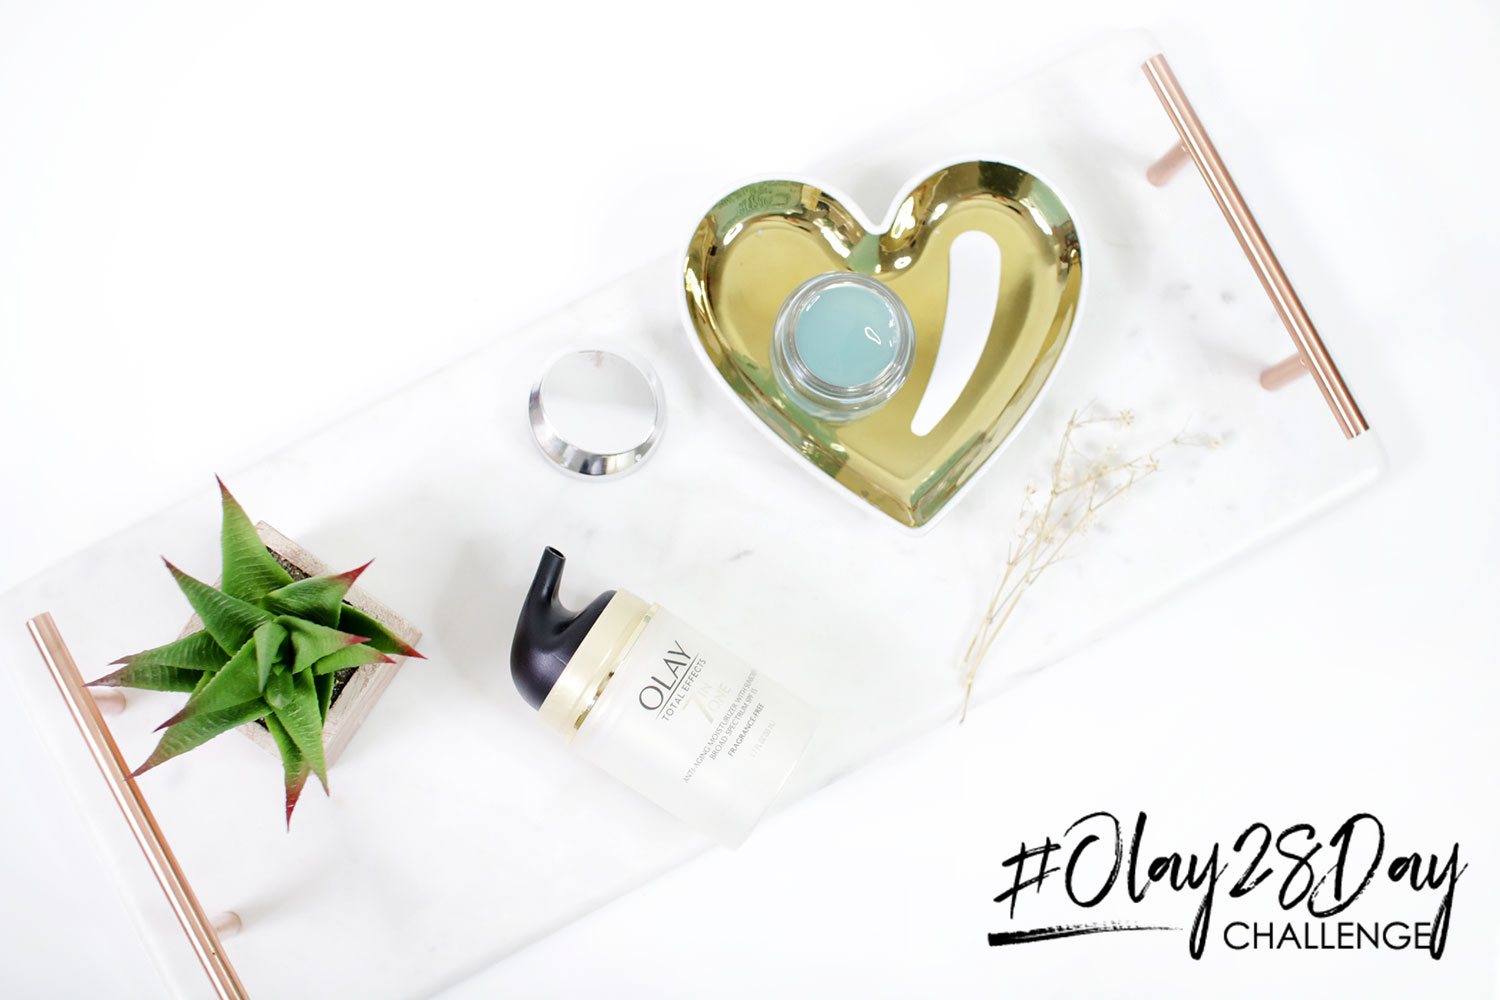 Olay 28 Day Challenge